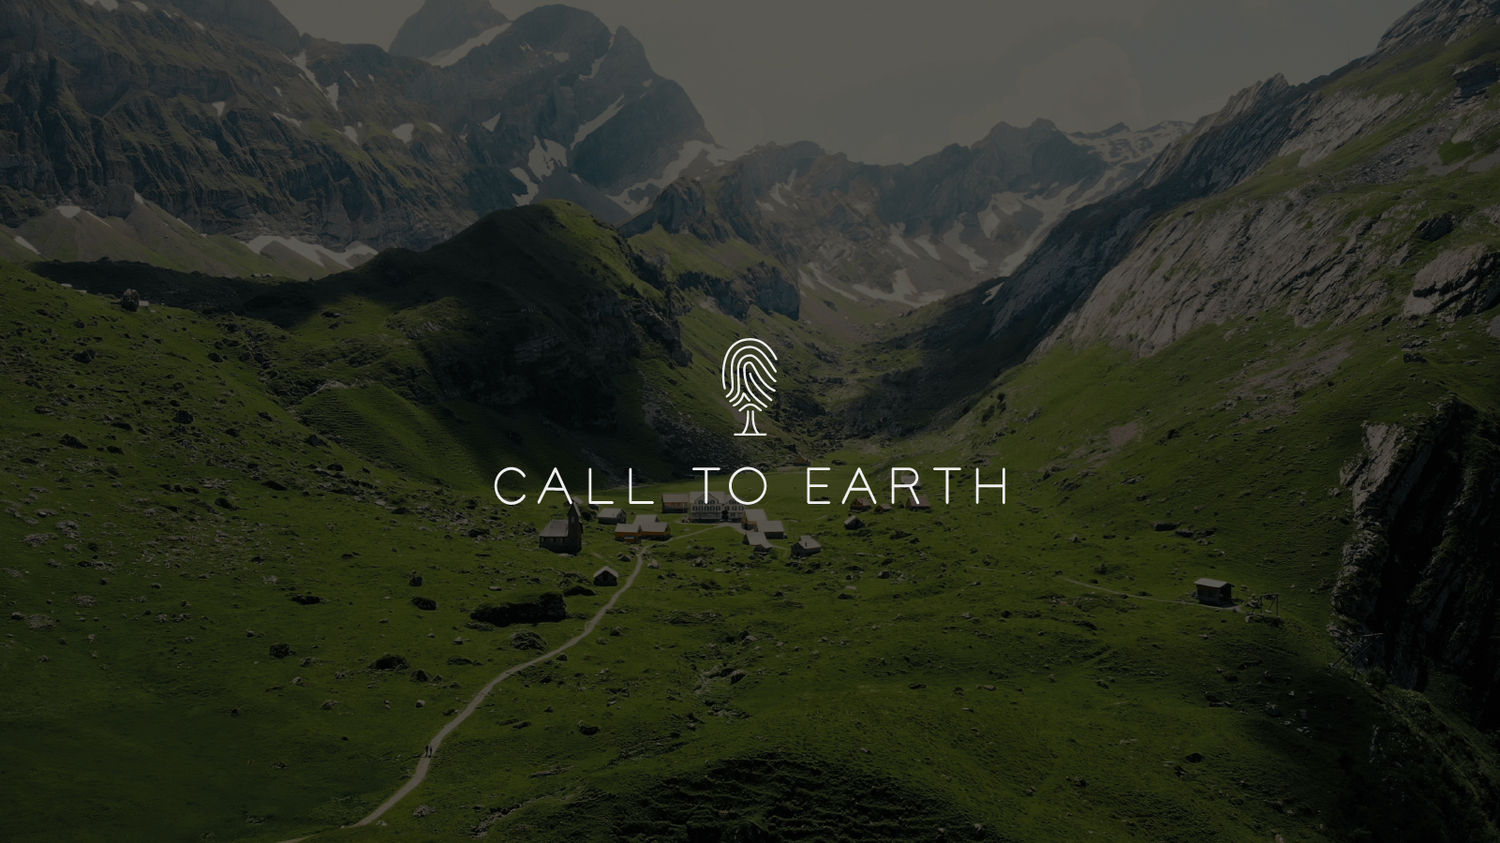 Call to Earth